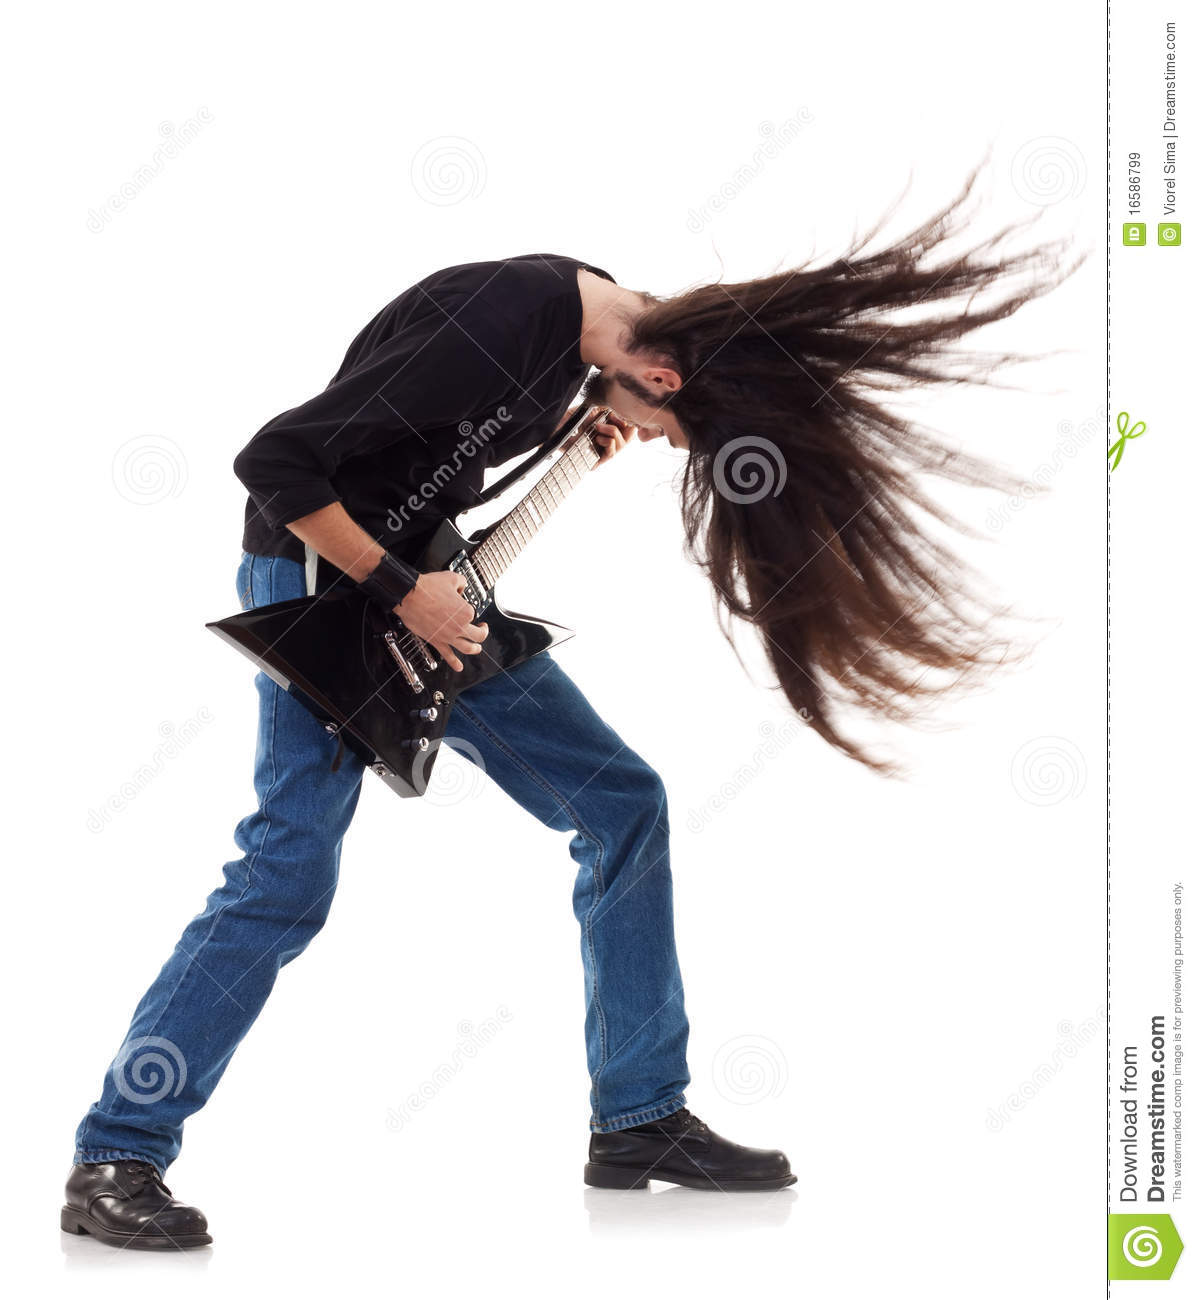 Headbanging Rocker Royalty Free Stock Images - Image: 16586799